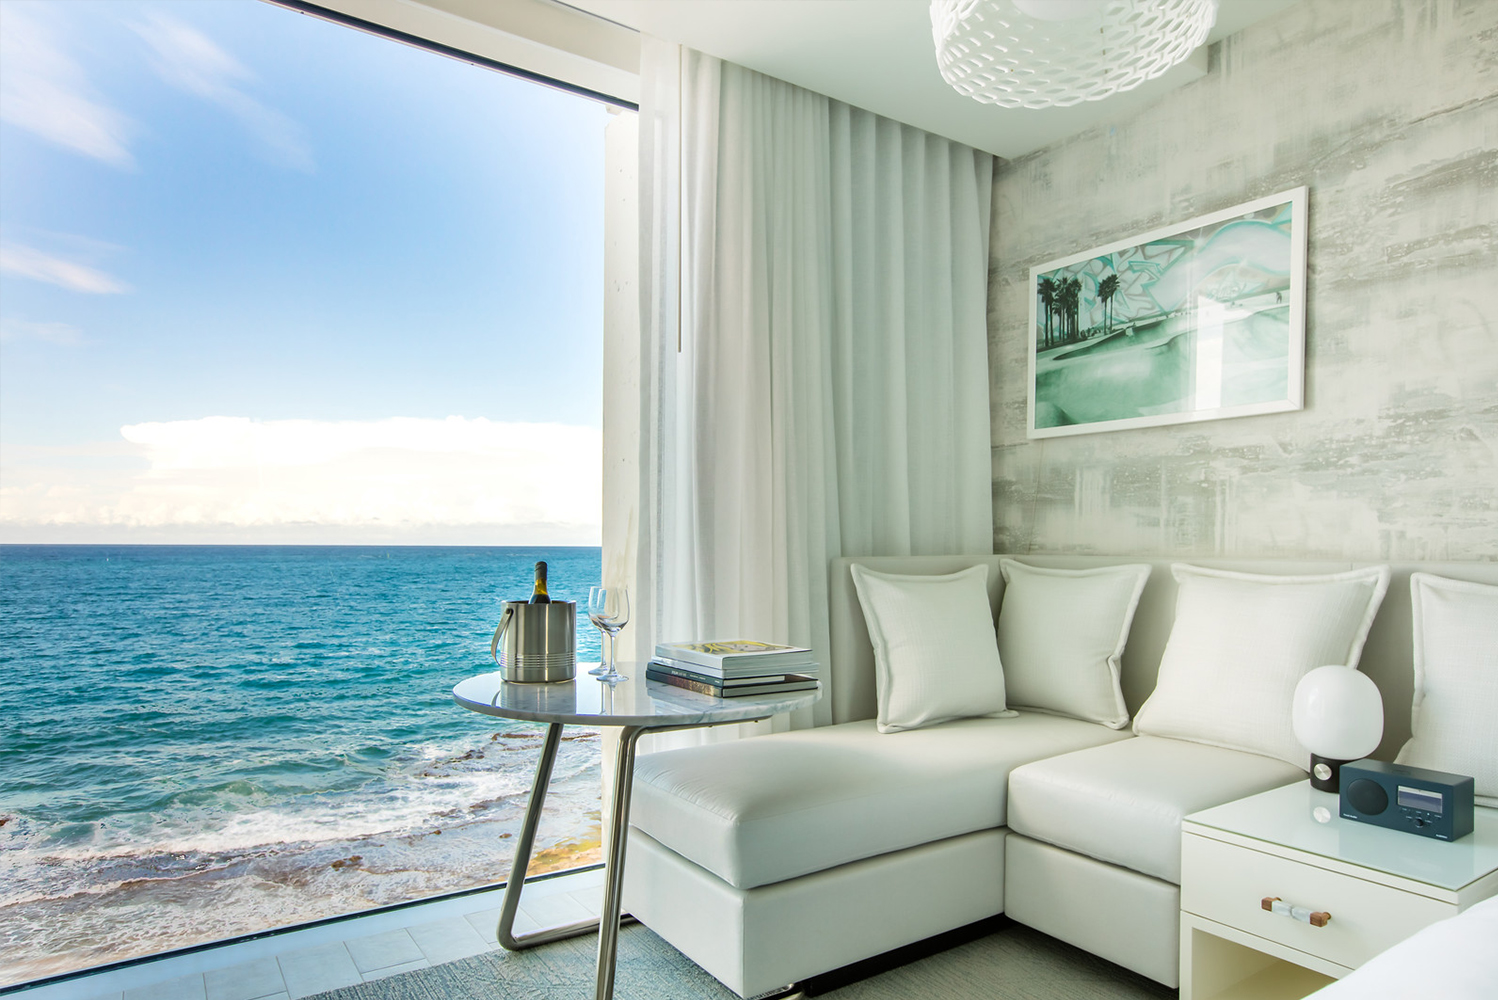 The rooms will have floor-to-ceiling windows to offer views of the Atlantic Ocean or the neighboring Laguna del Condado.